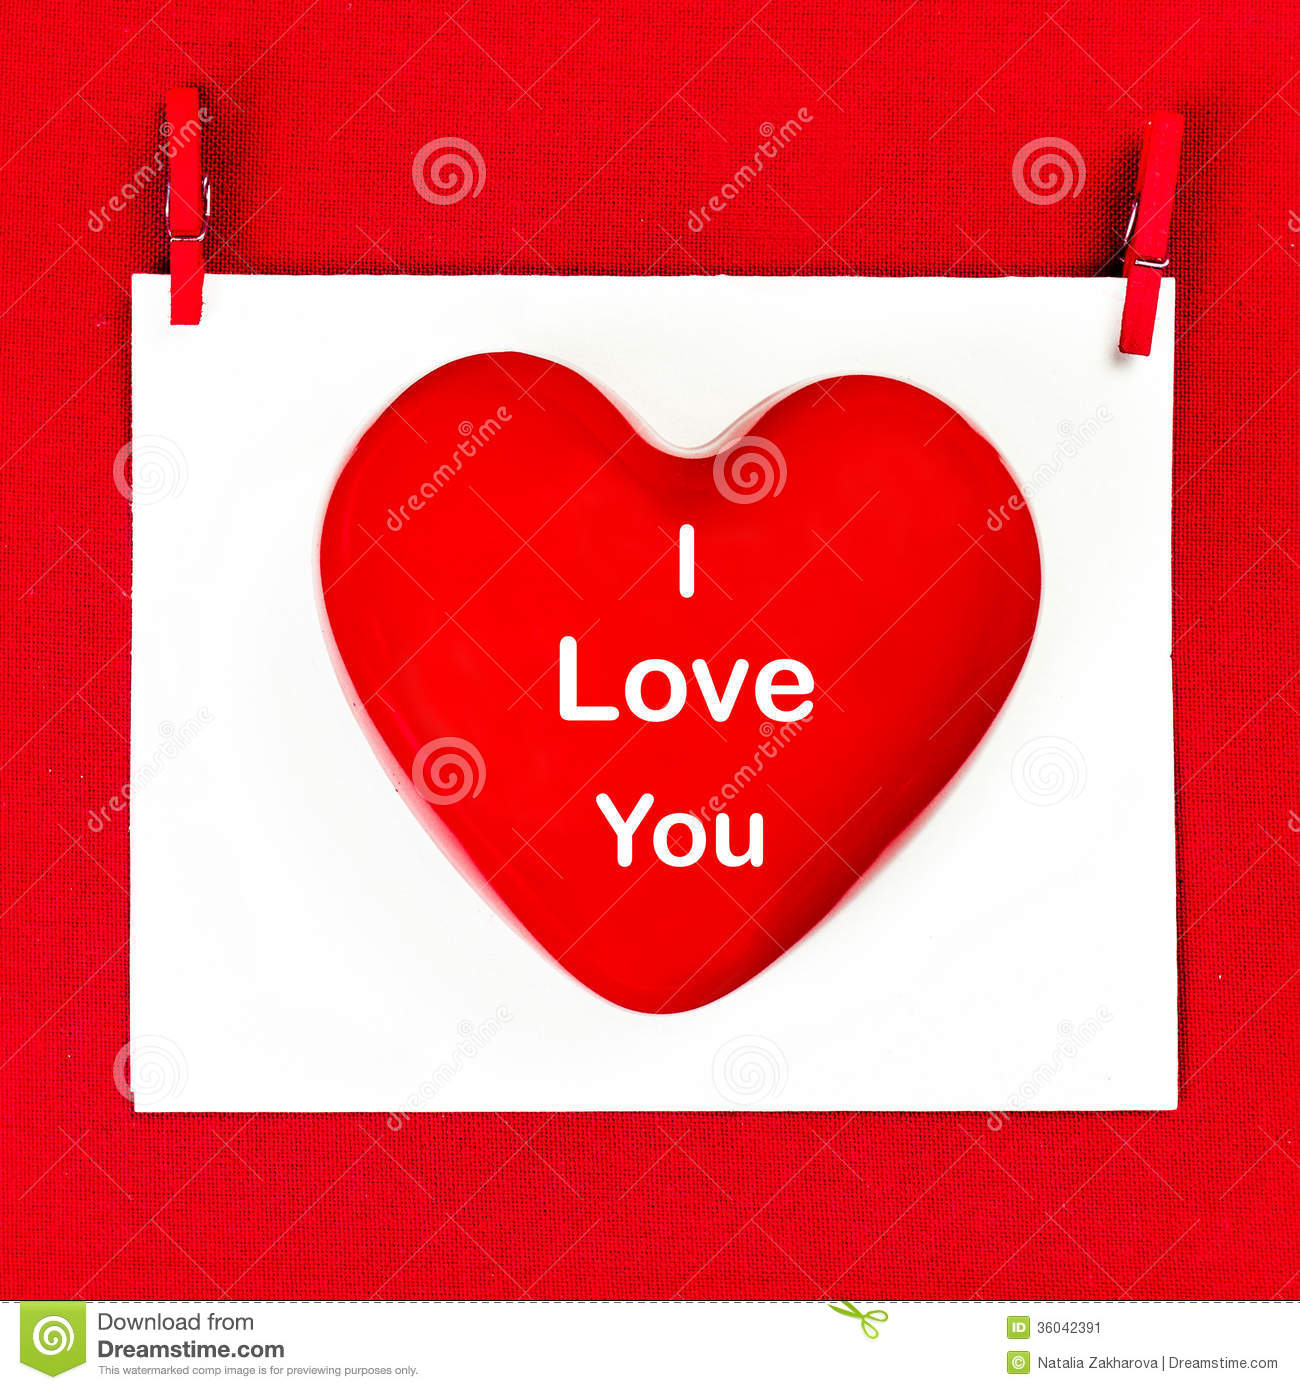 Valentines Day Background With Greeting Text I LOVE YOU